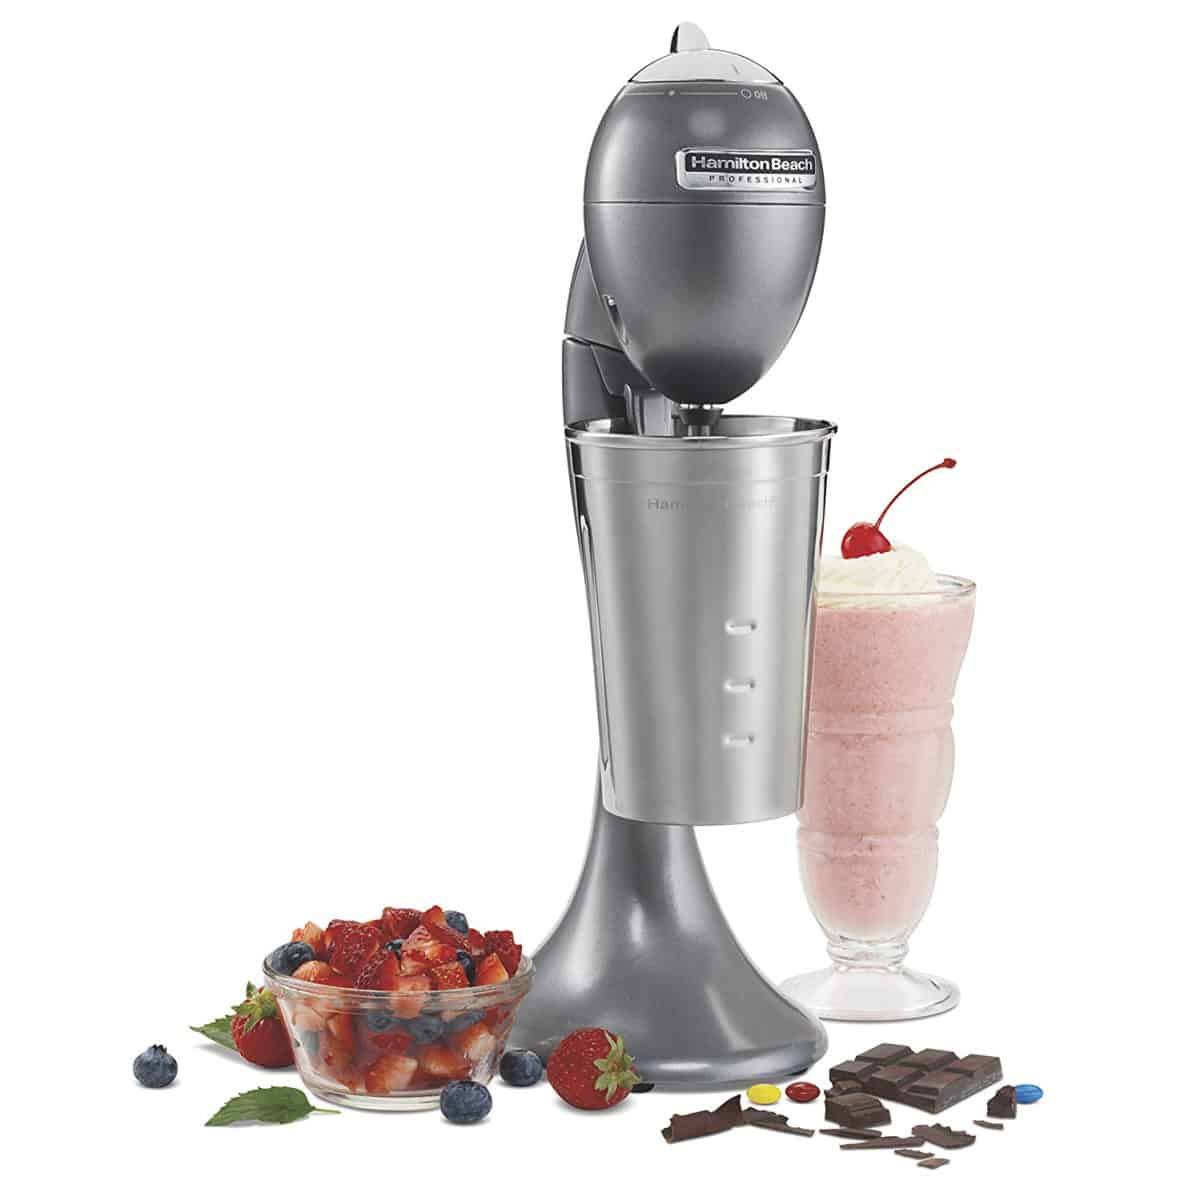 Hamilton Beach Pro All-Metal Drink Mixer | Hey Alexa, Get These 21 Kitchen Appliances On Amazon